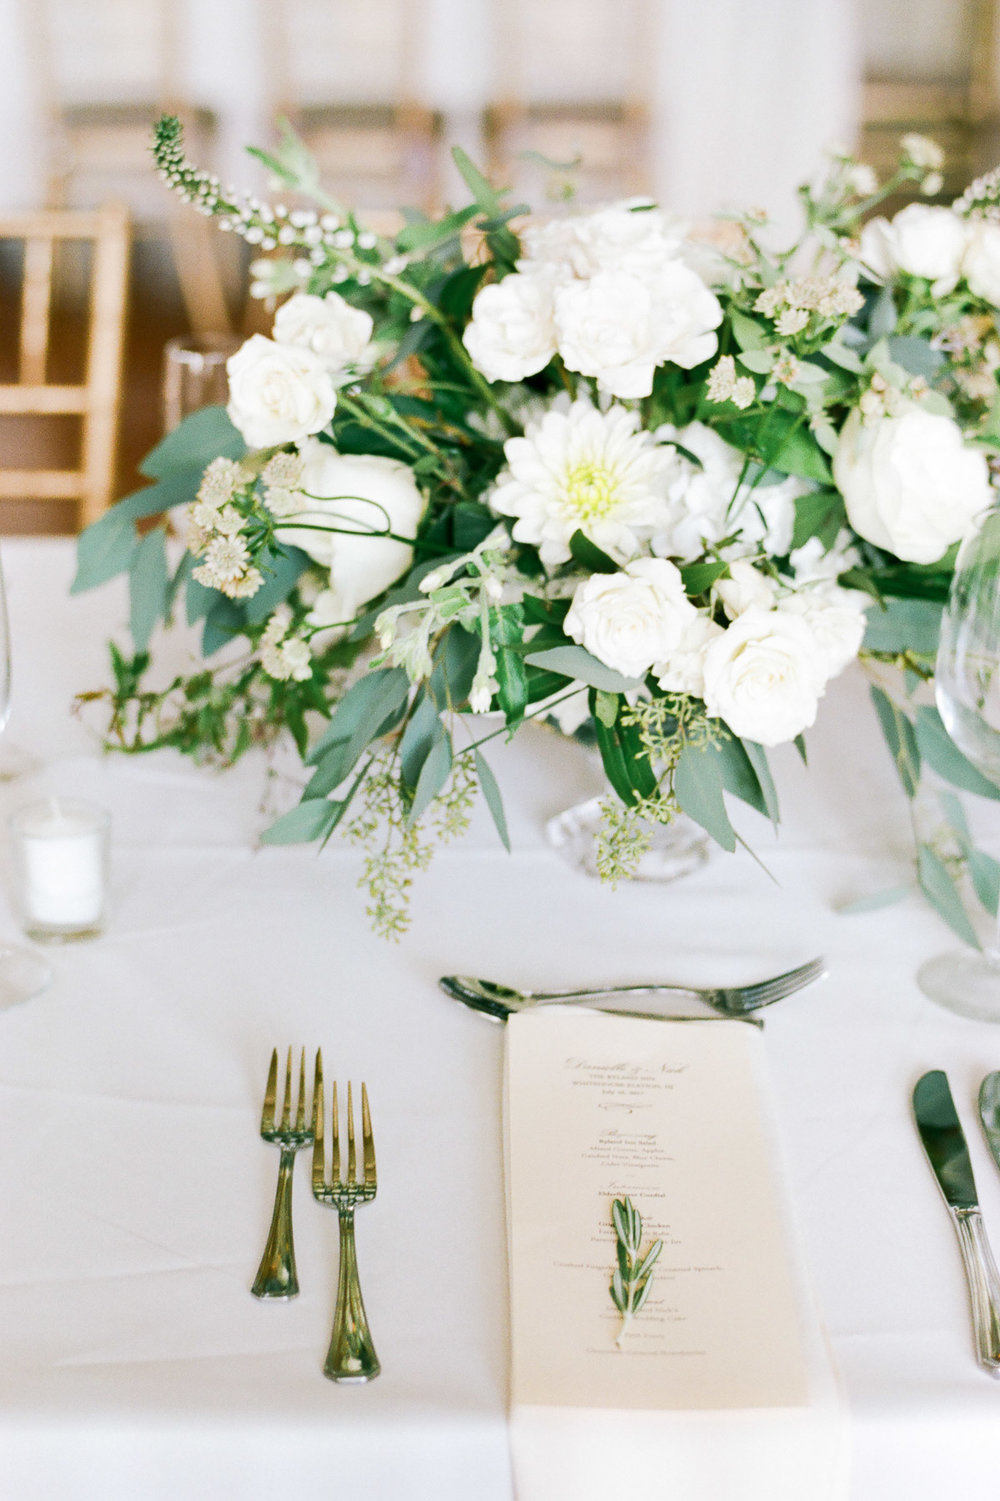 White and green organic tablescape